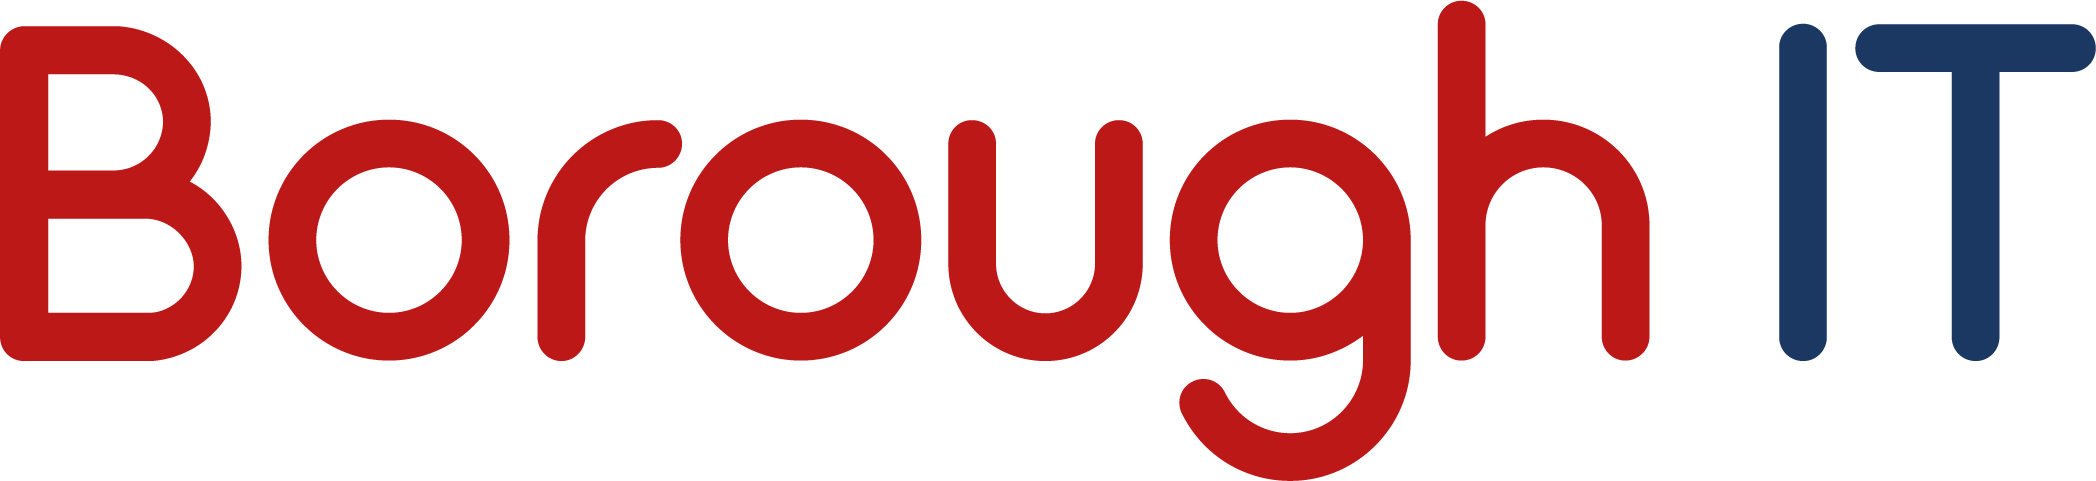 Borough IT logo